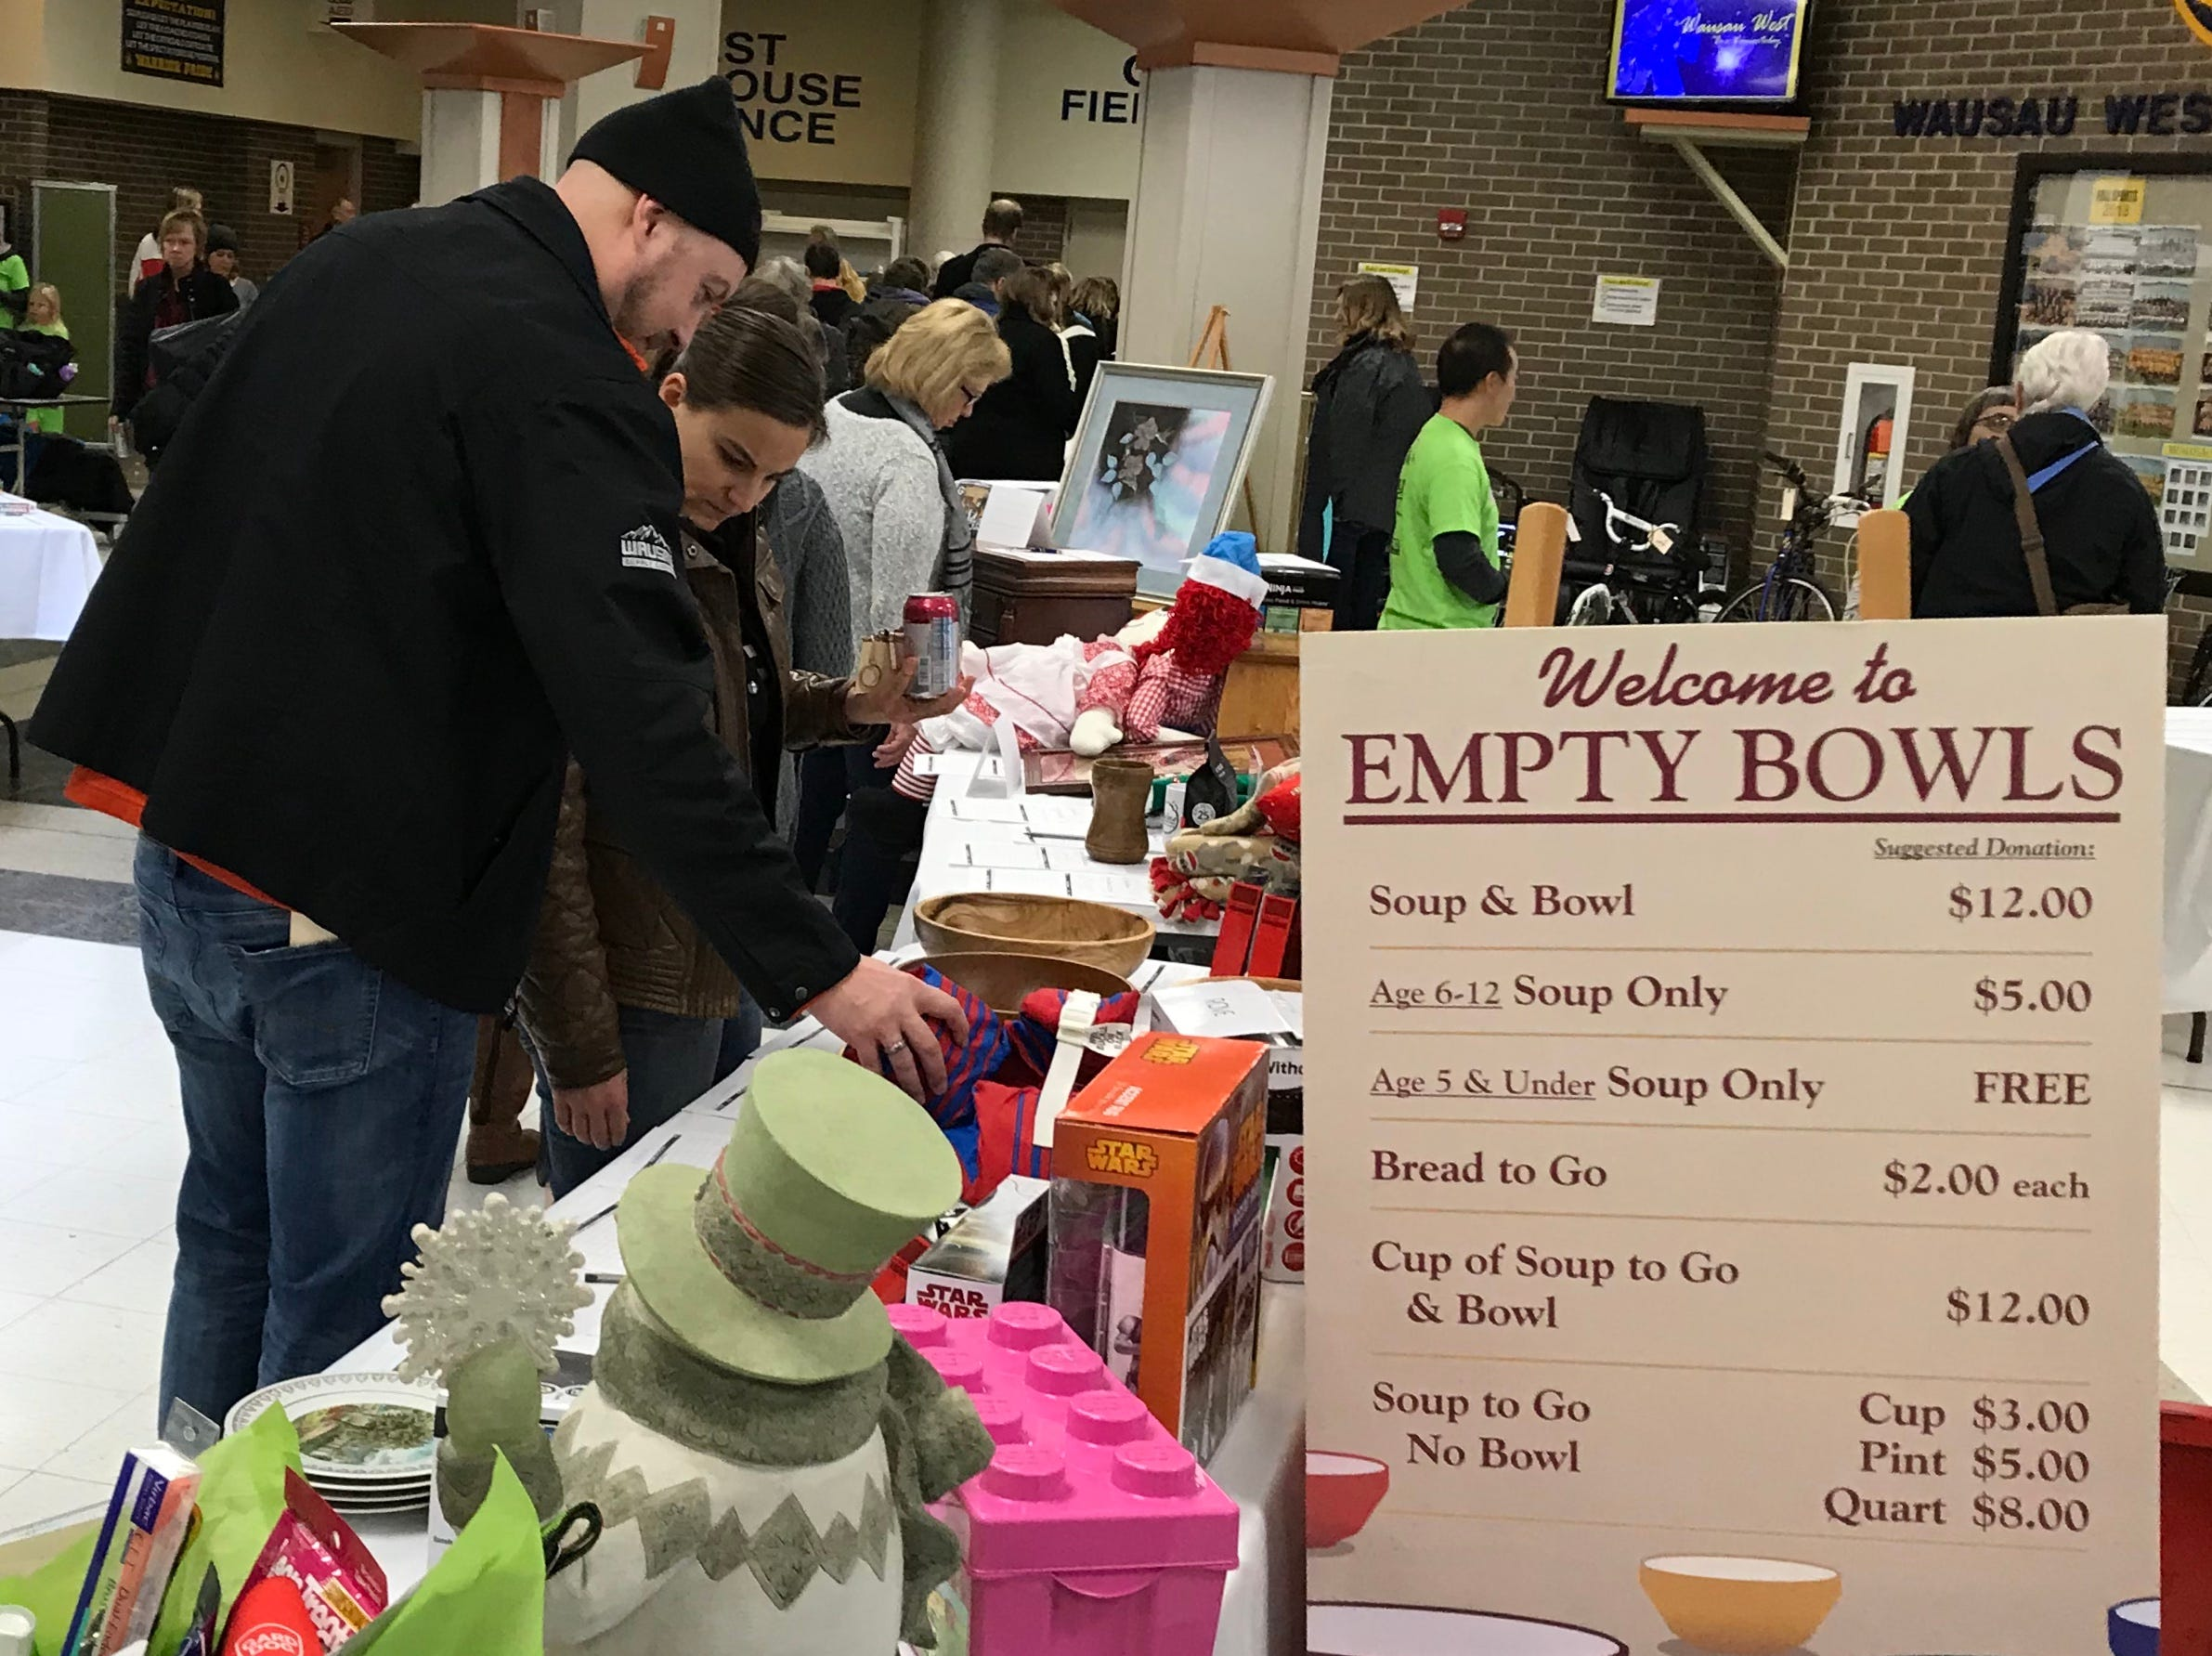 The 11th annual Empty Bowls fundraiser for The Neighbors' Place was held Saturday, Nov. 17., at Wausau West High School.